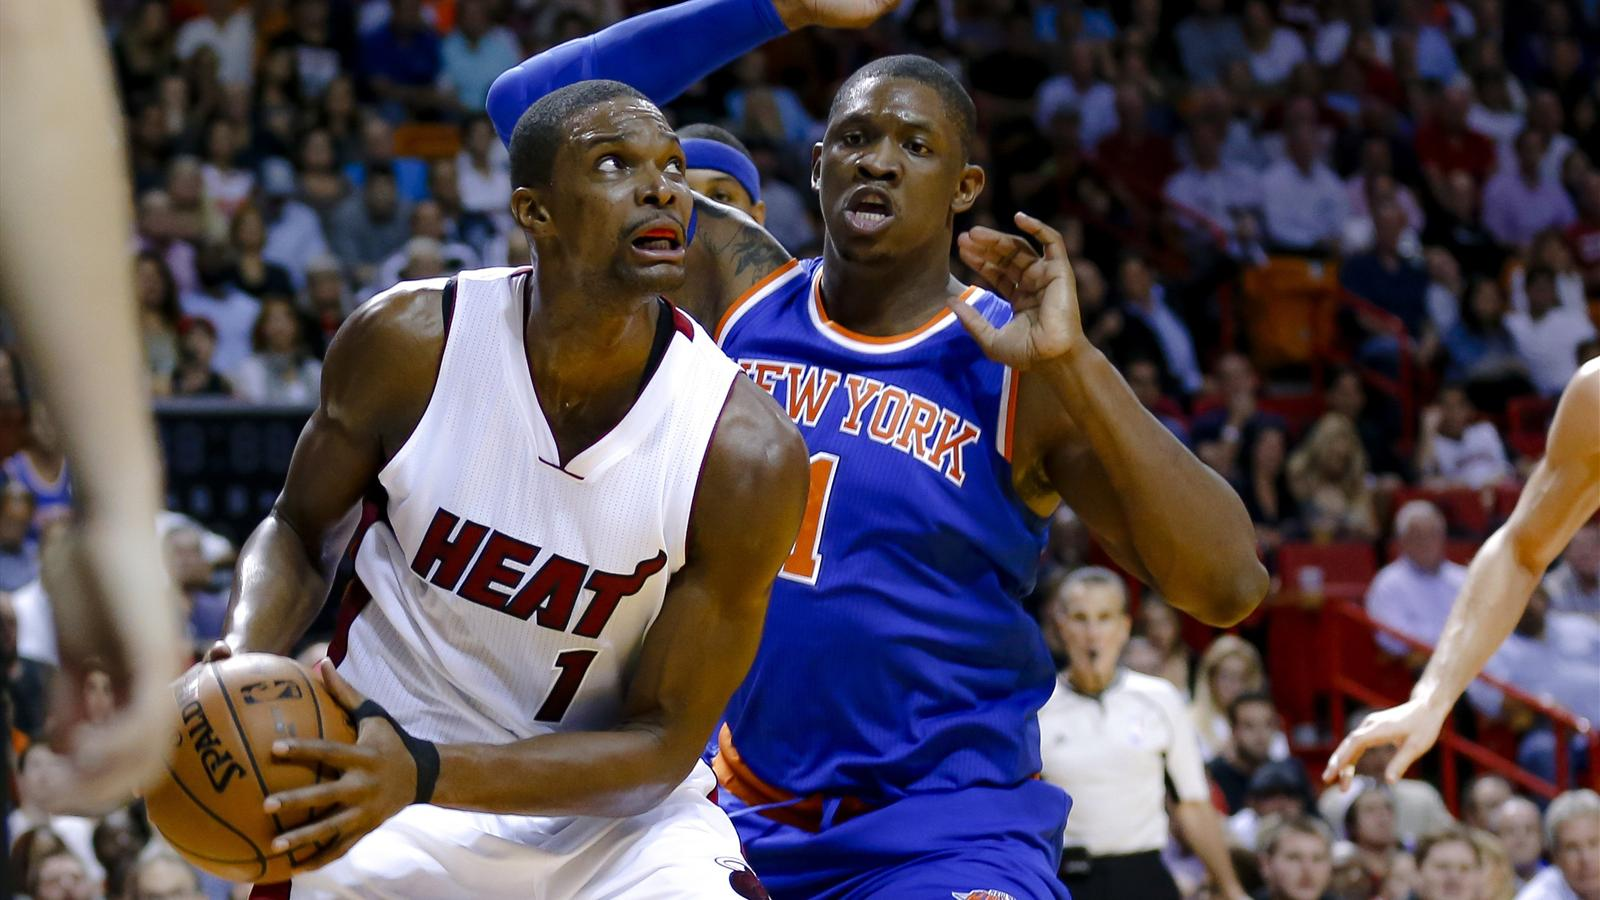 Miami's Chris Bosh is fouled by New York Knicks forward Kevin Seraphin